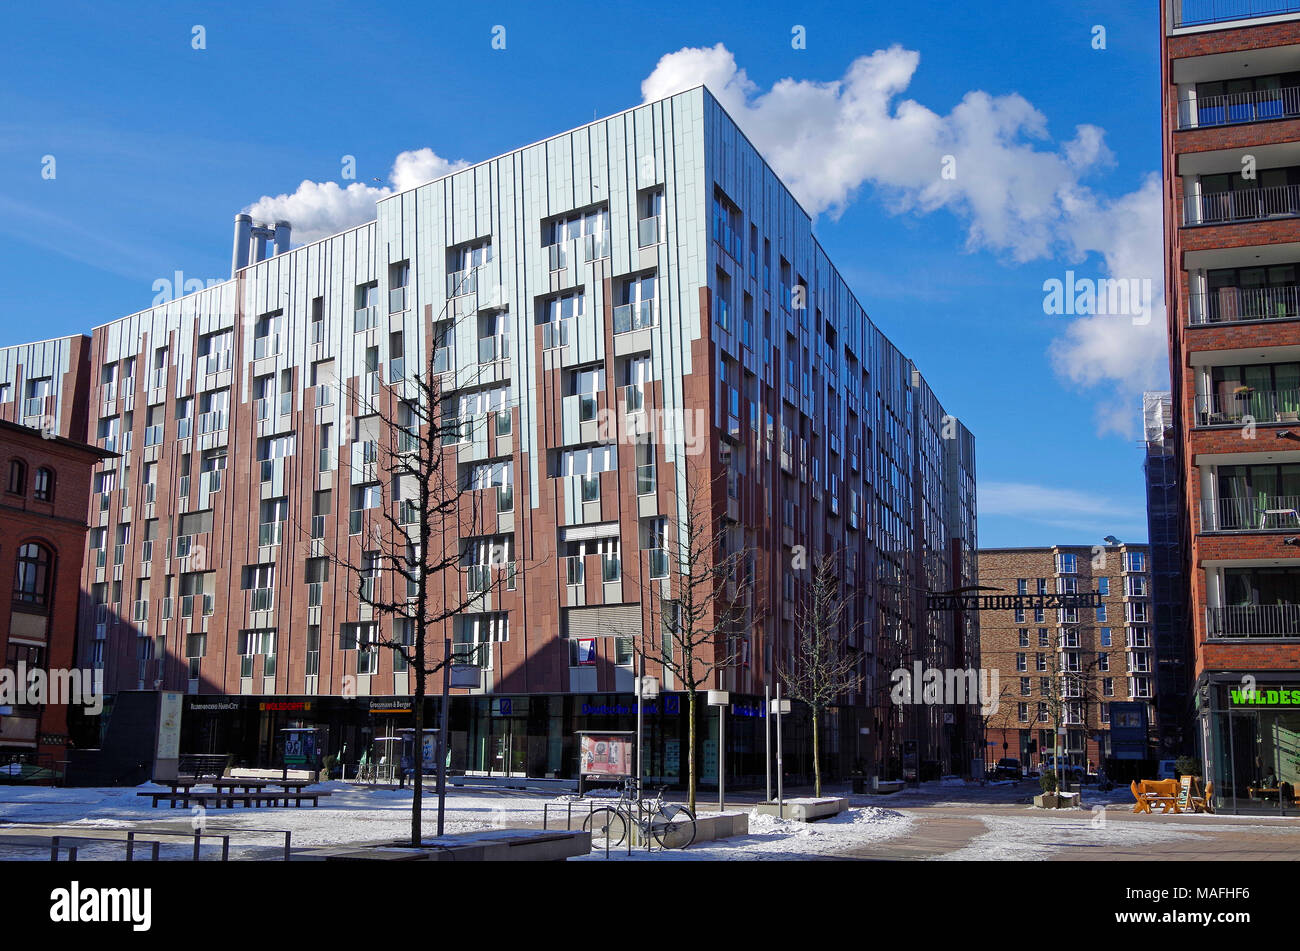 UberseeBoulevard, a 400m long shopping street, with apartment buildings above, in Hafen City, an immense  urban redevelopment project, in Hamburg - Stock Image